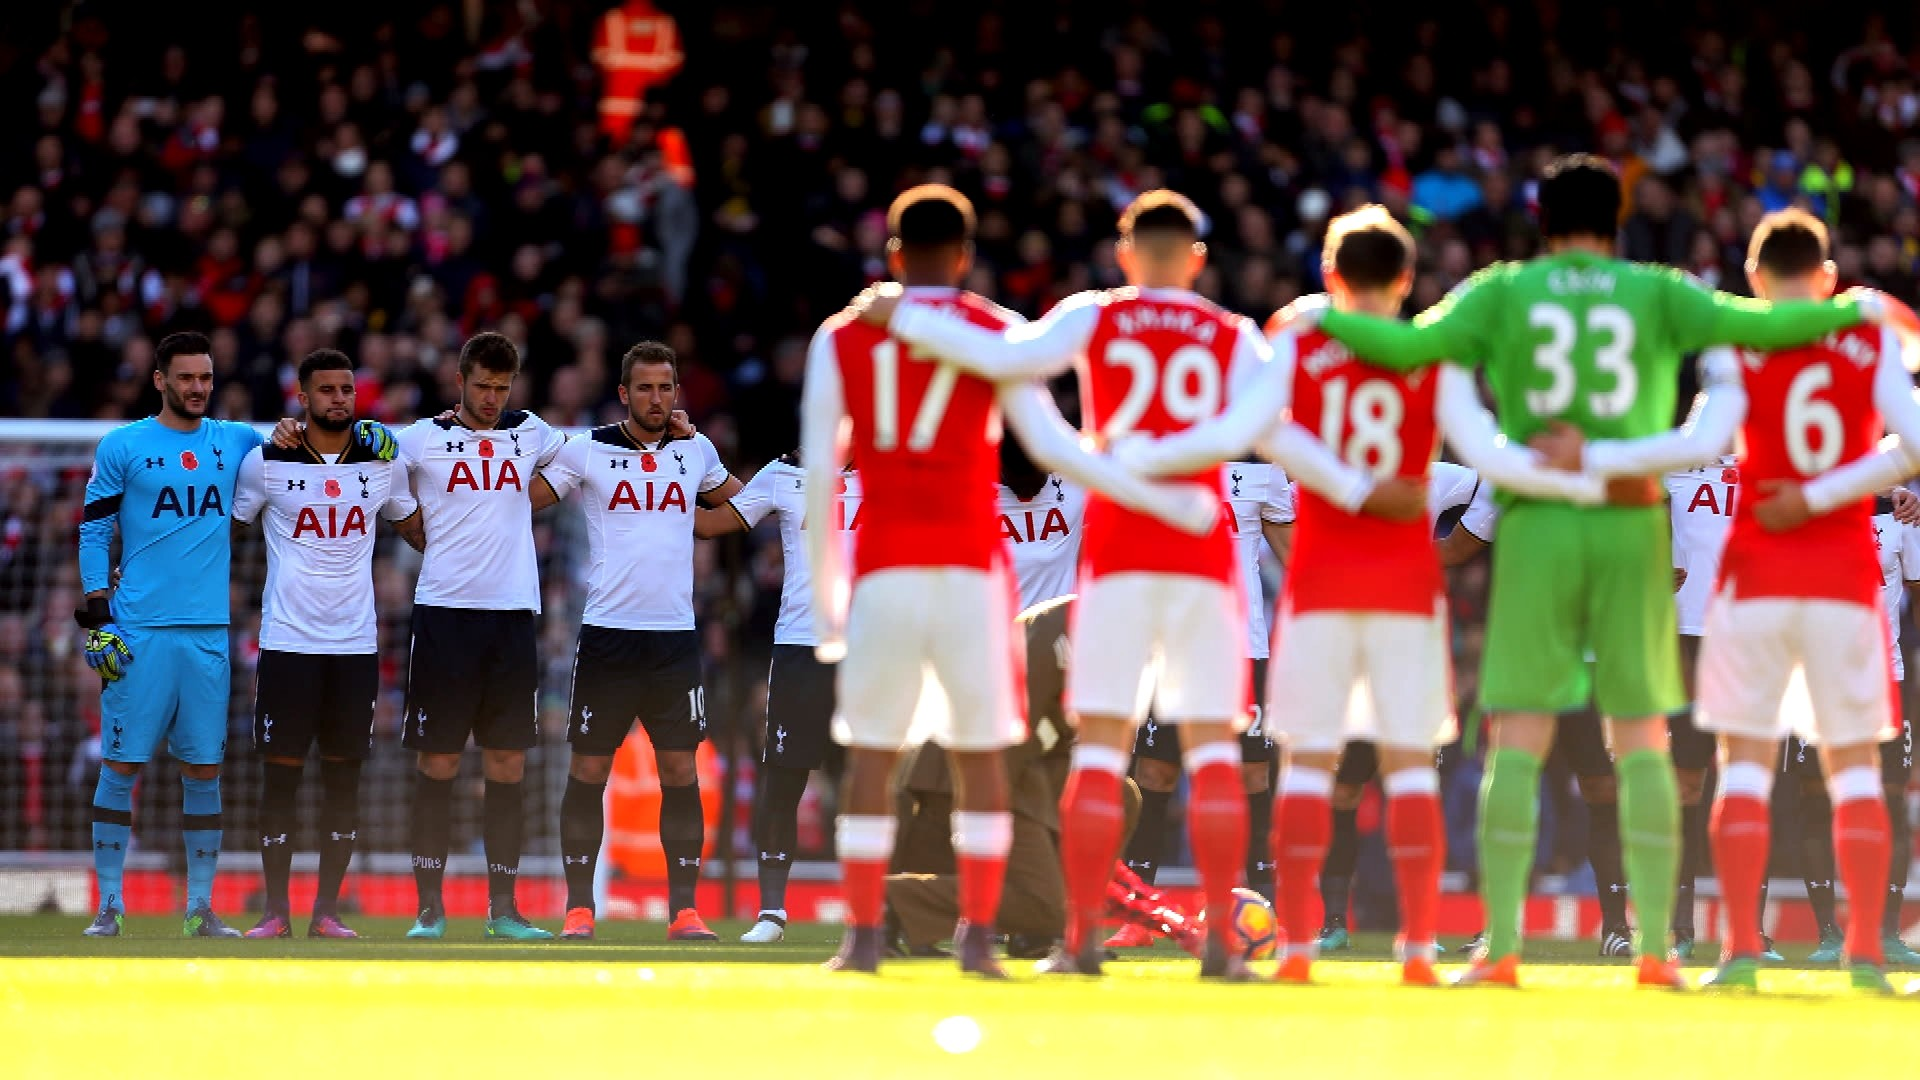 Image result for north london derby